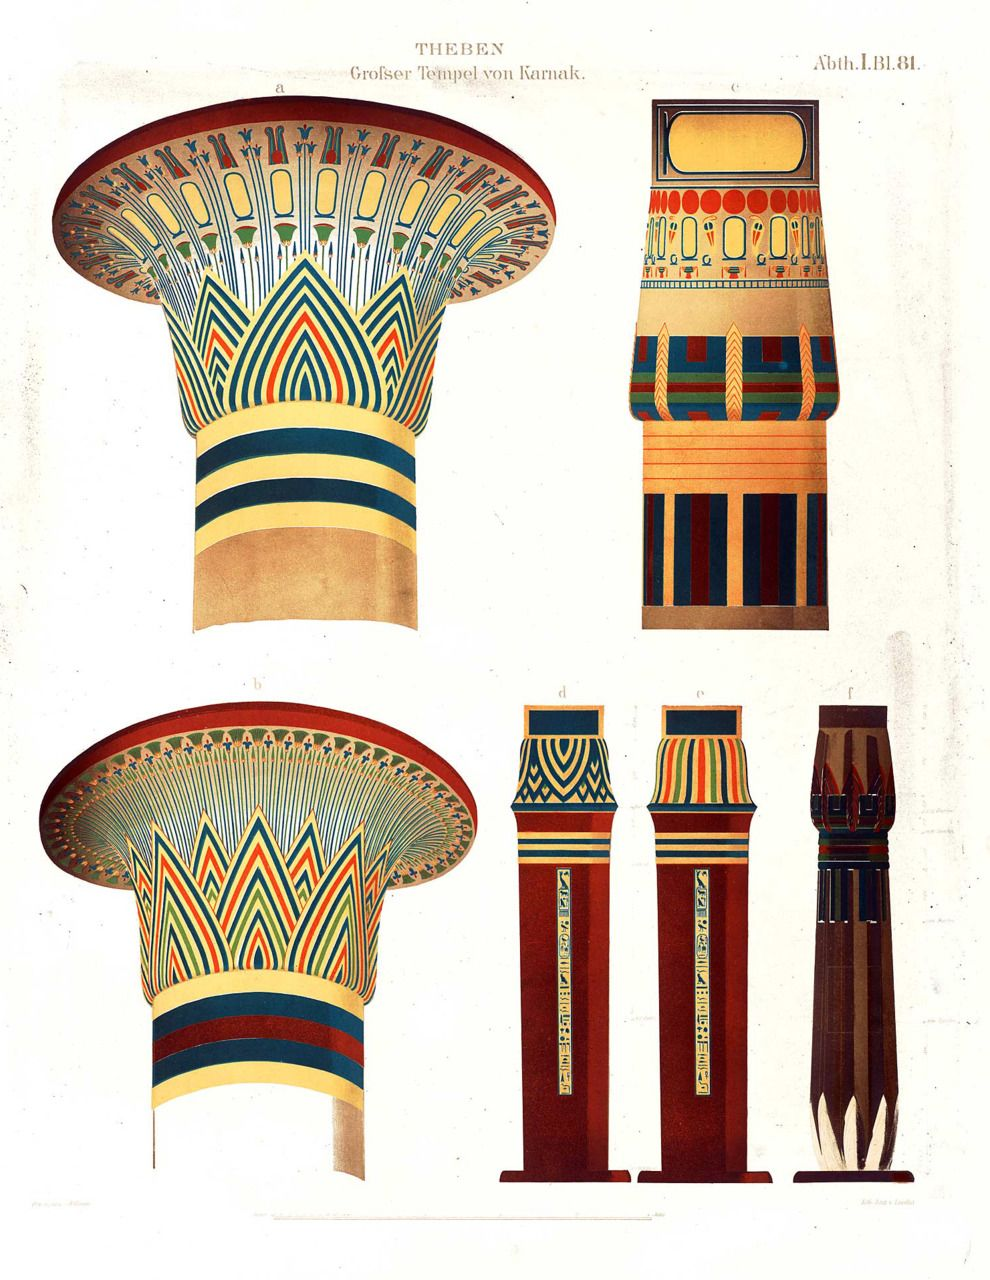 Free hd clipart egyptian painted column designs image freeuse Column designs from the great temple of Karnak at Thebes | Columns ... image freeuse